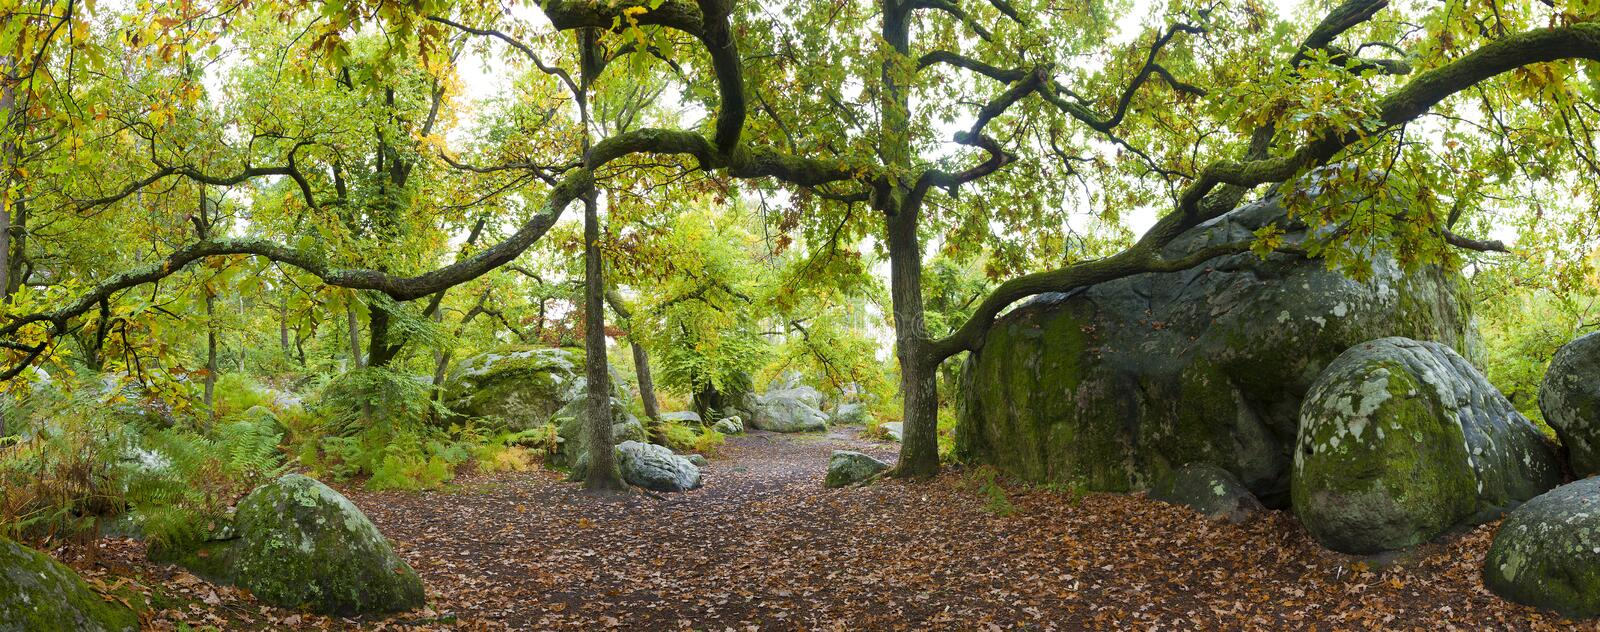 Forest of Fontainebleau royalty free stock photo